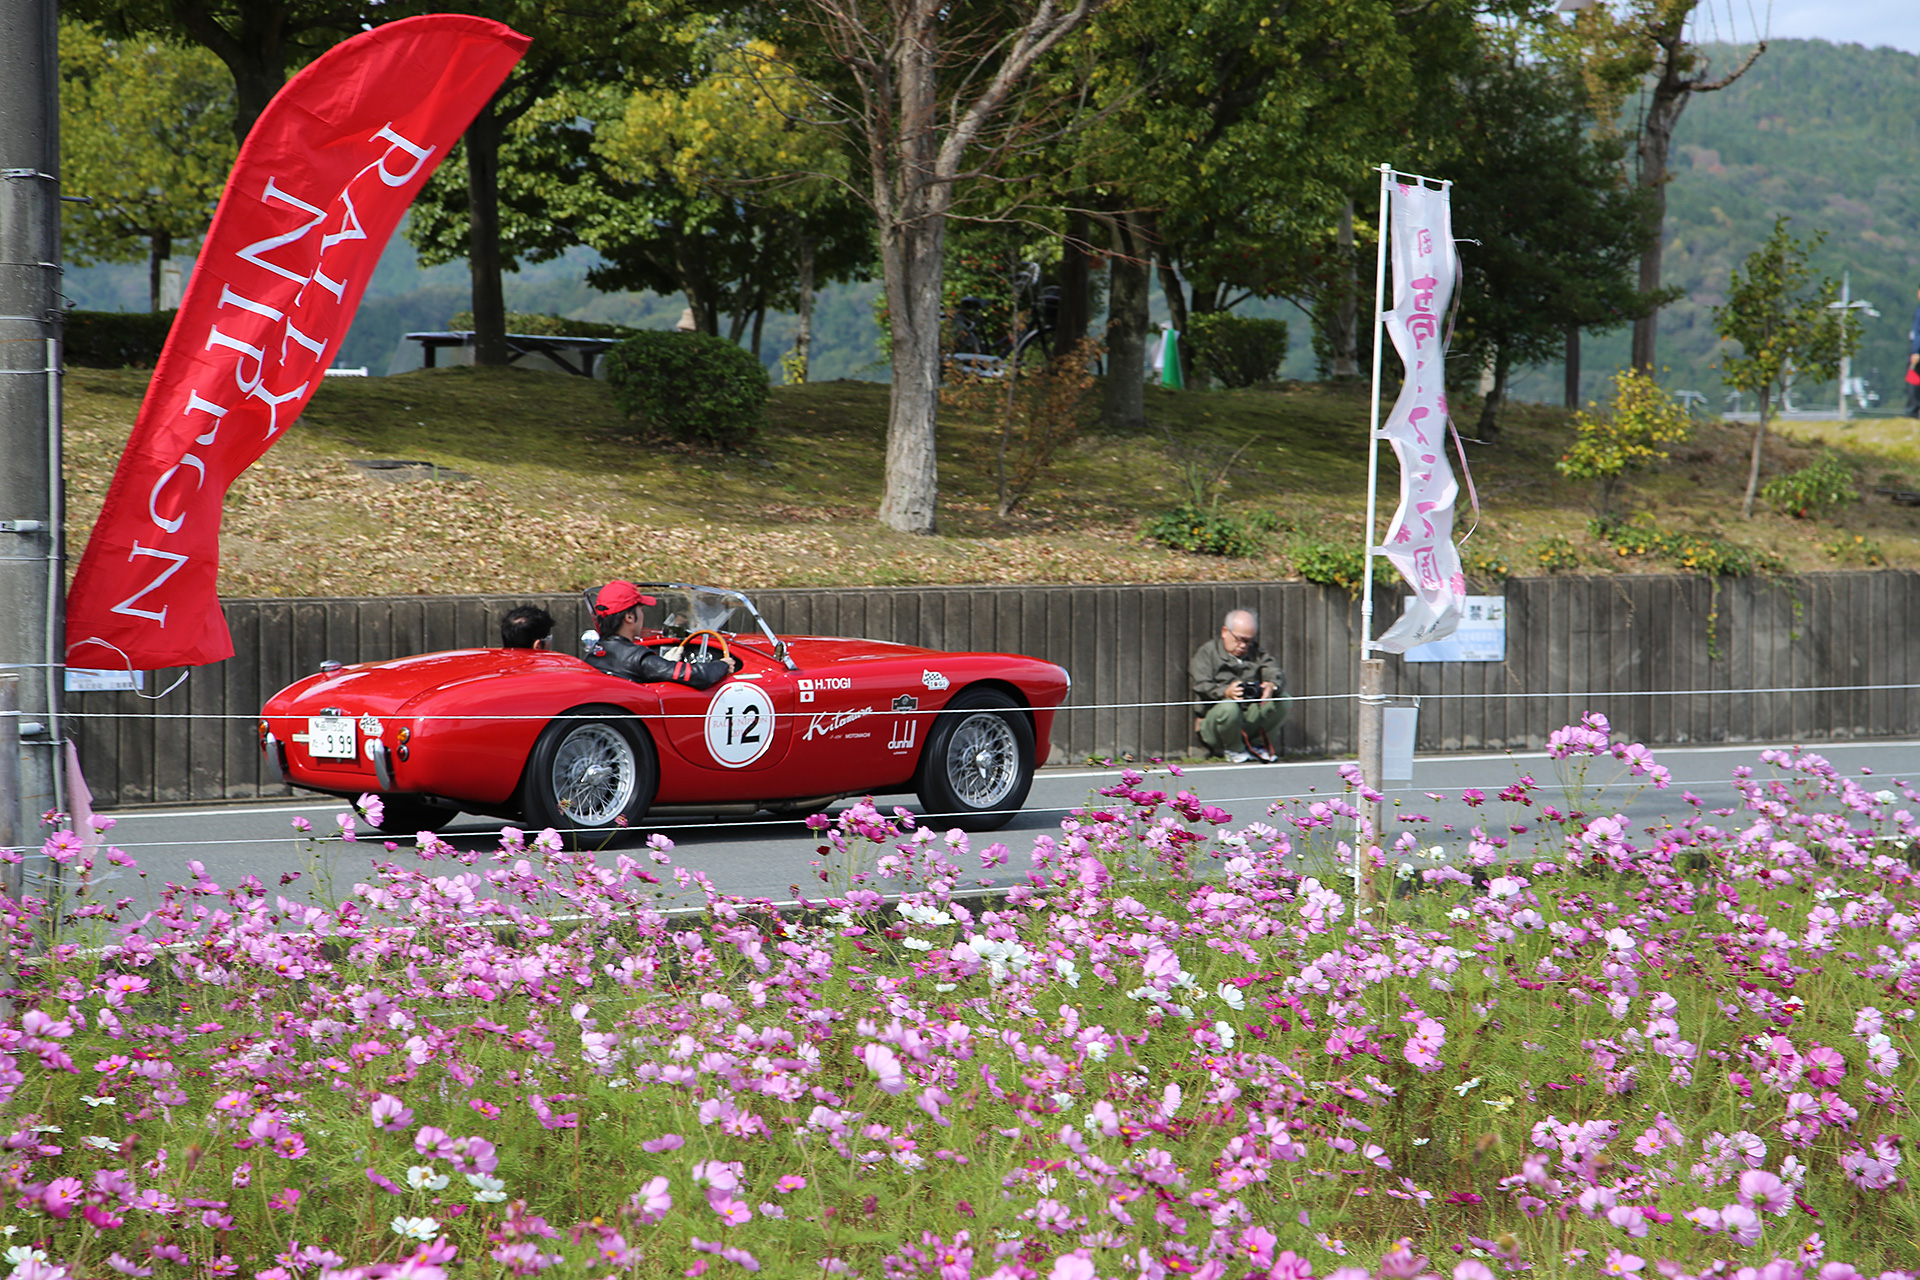 Alfred-dunhill-Rally-Nippon-2015-F2H22A3605.jpg